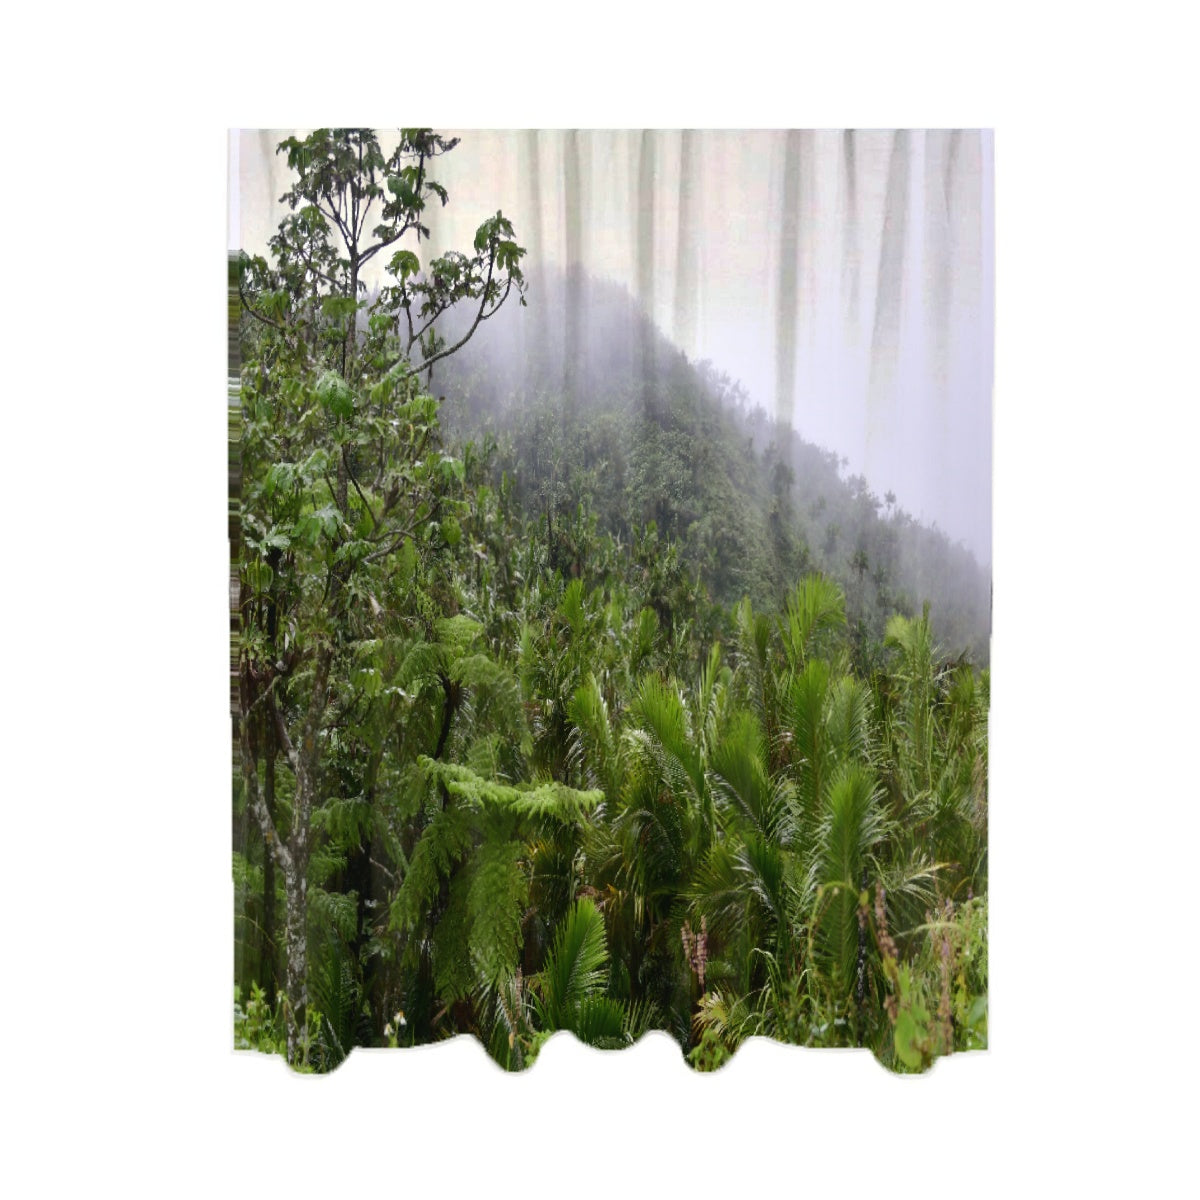 Chiffon - Two-piece Curtains - 40%-50% shading  - High Mountain Views  - Toro Negro rainforest Park Over 4,000 feet altitude - Highest in Puerto Rico